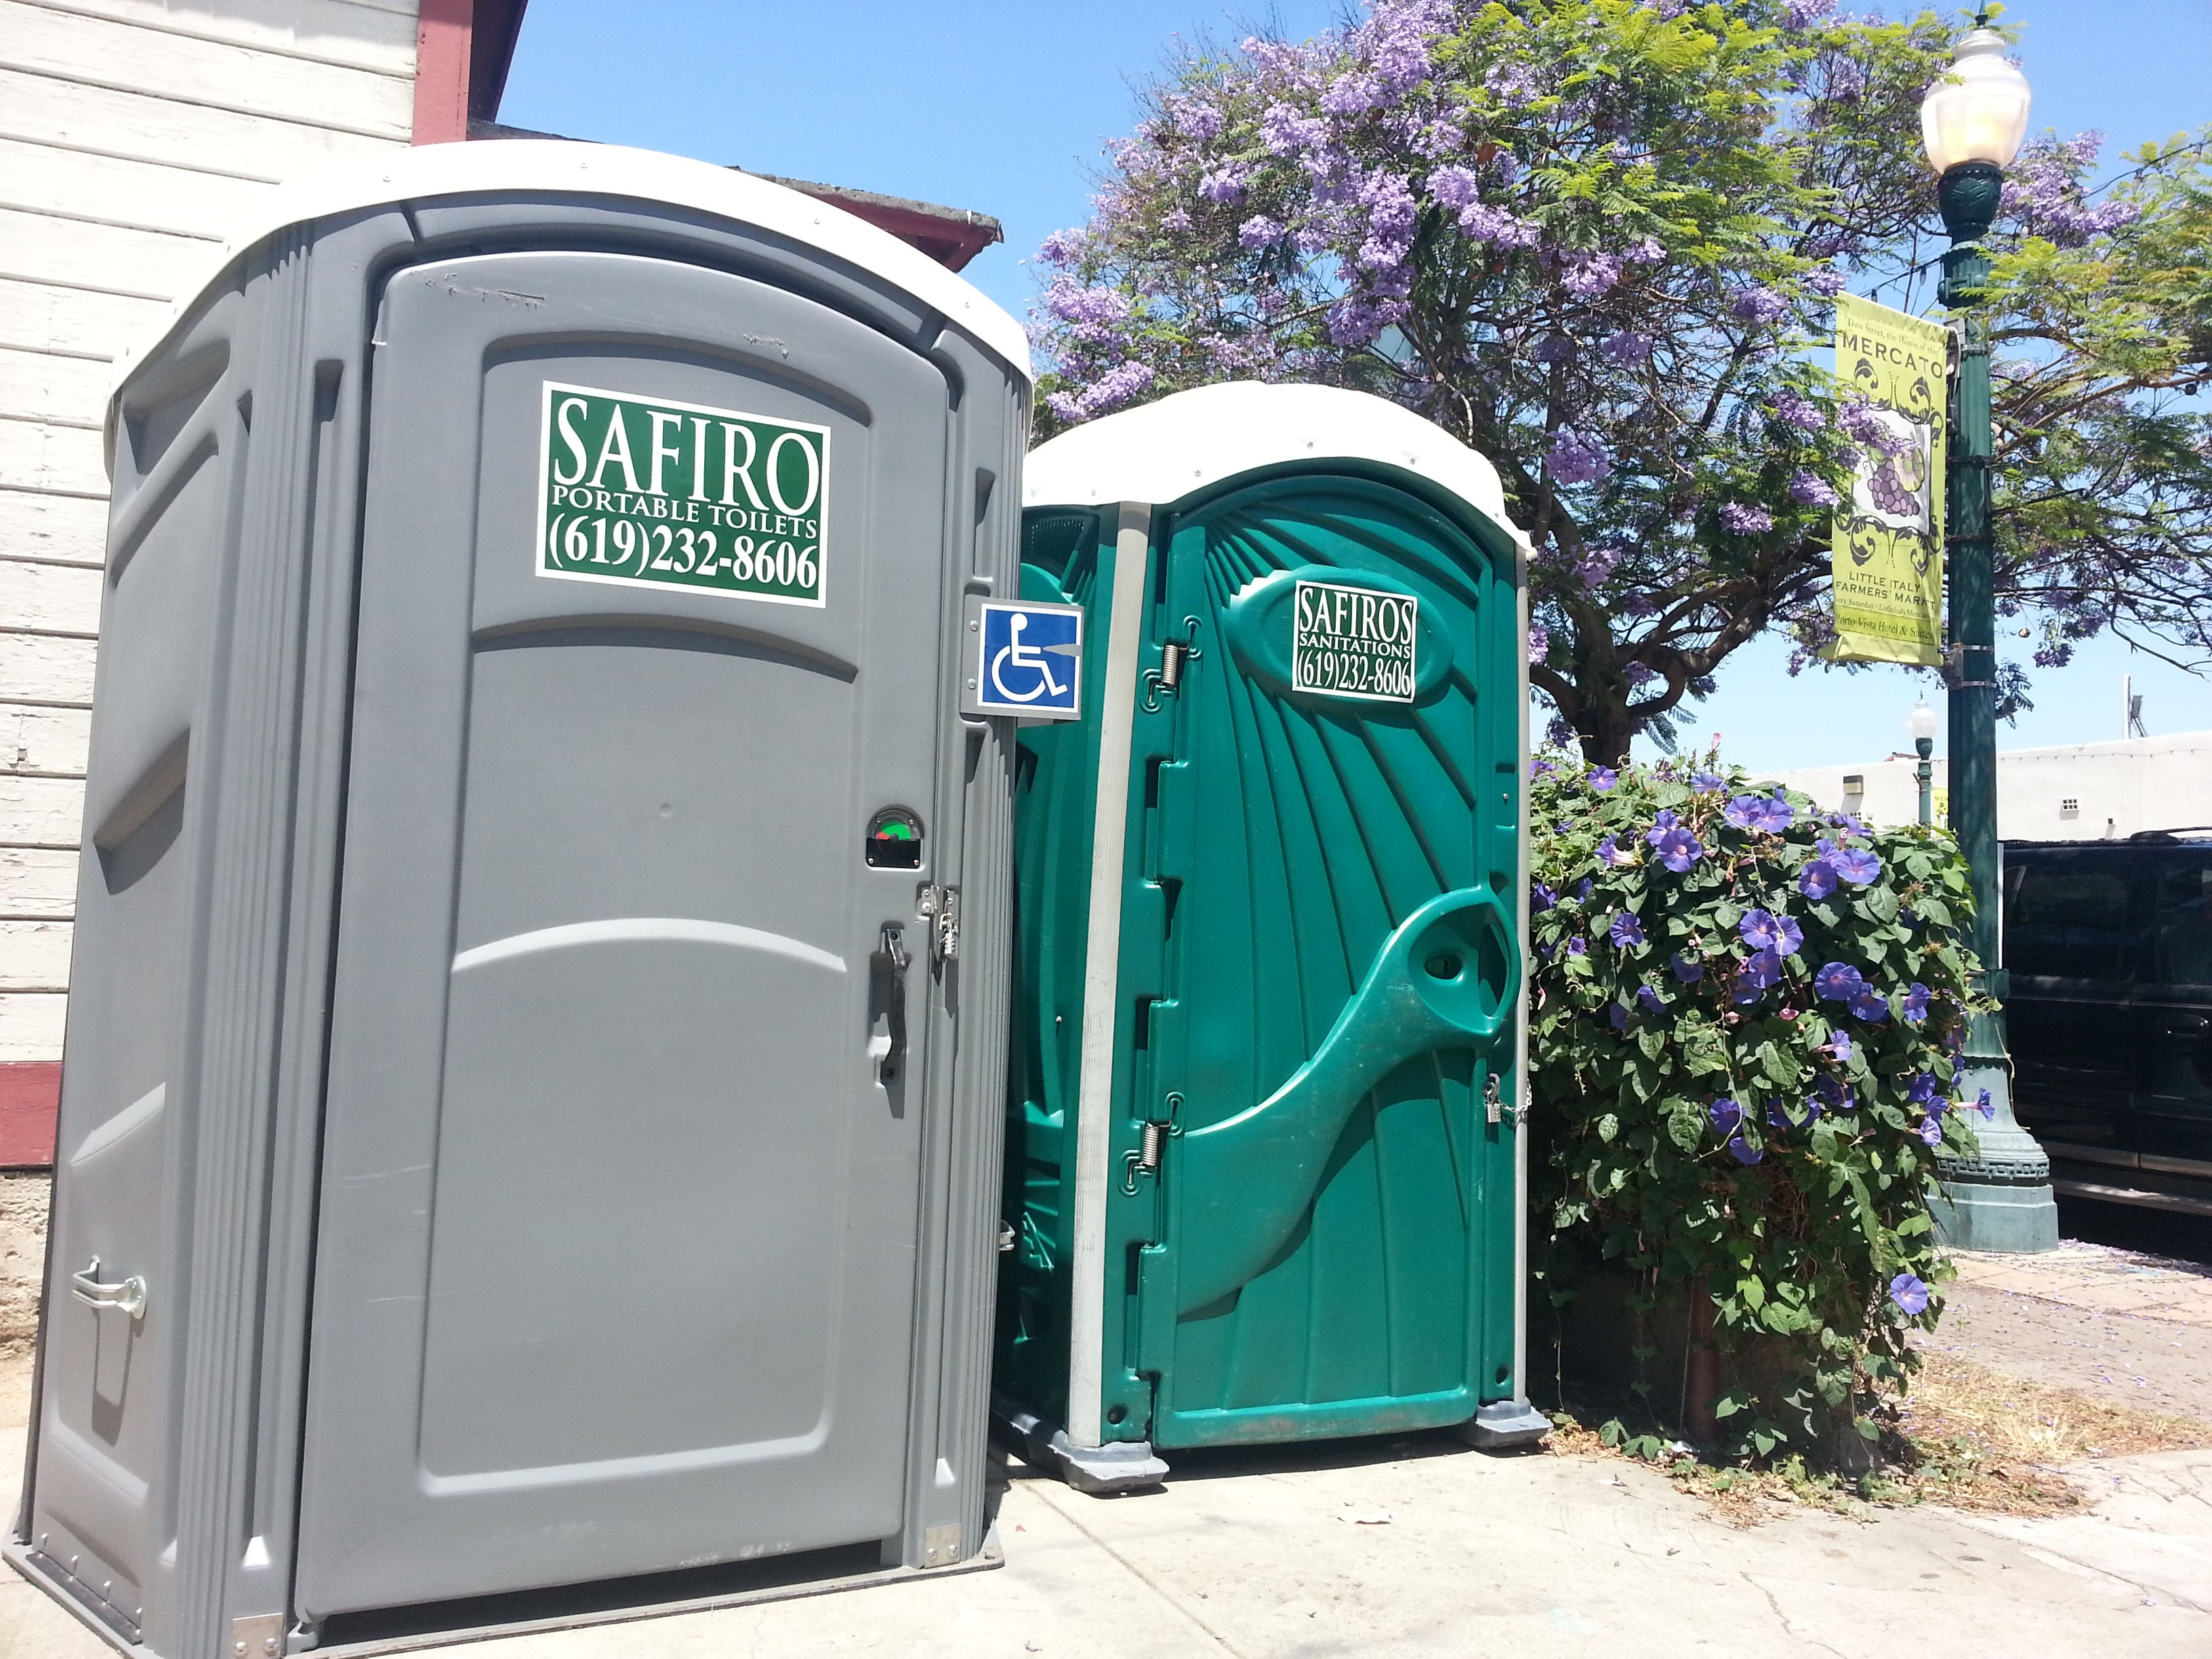 Safiro S Portable Toilets San Go California Is A